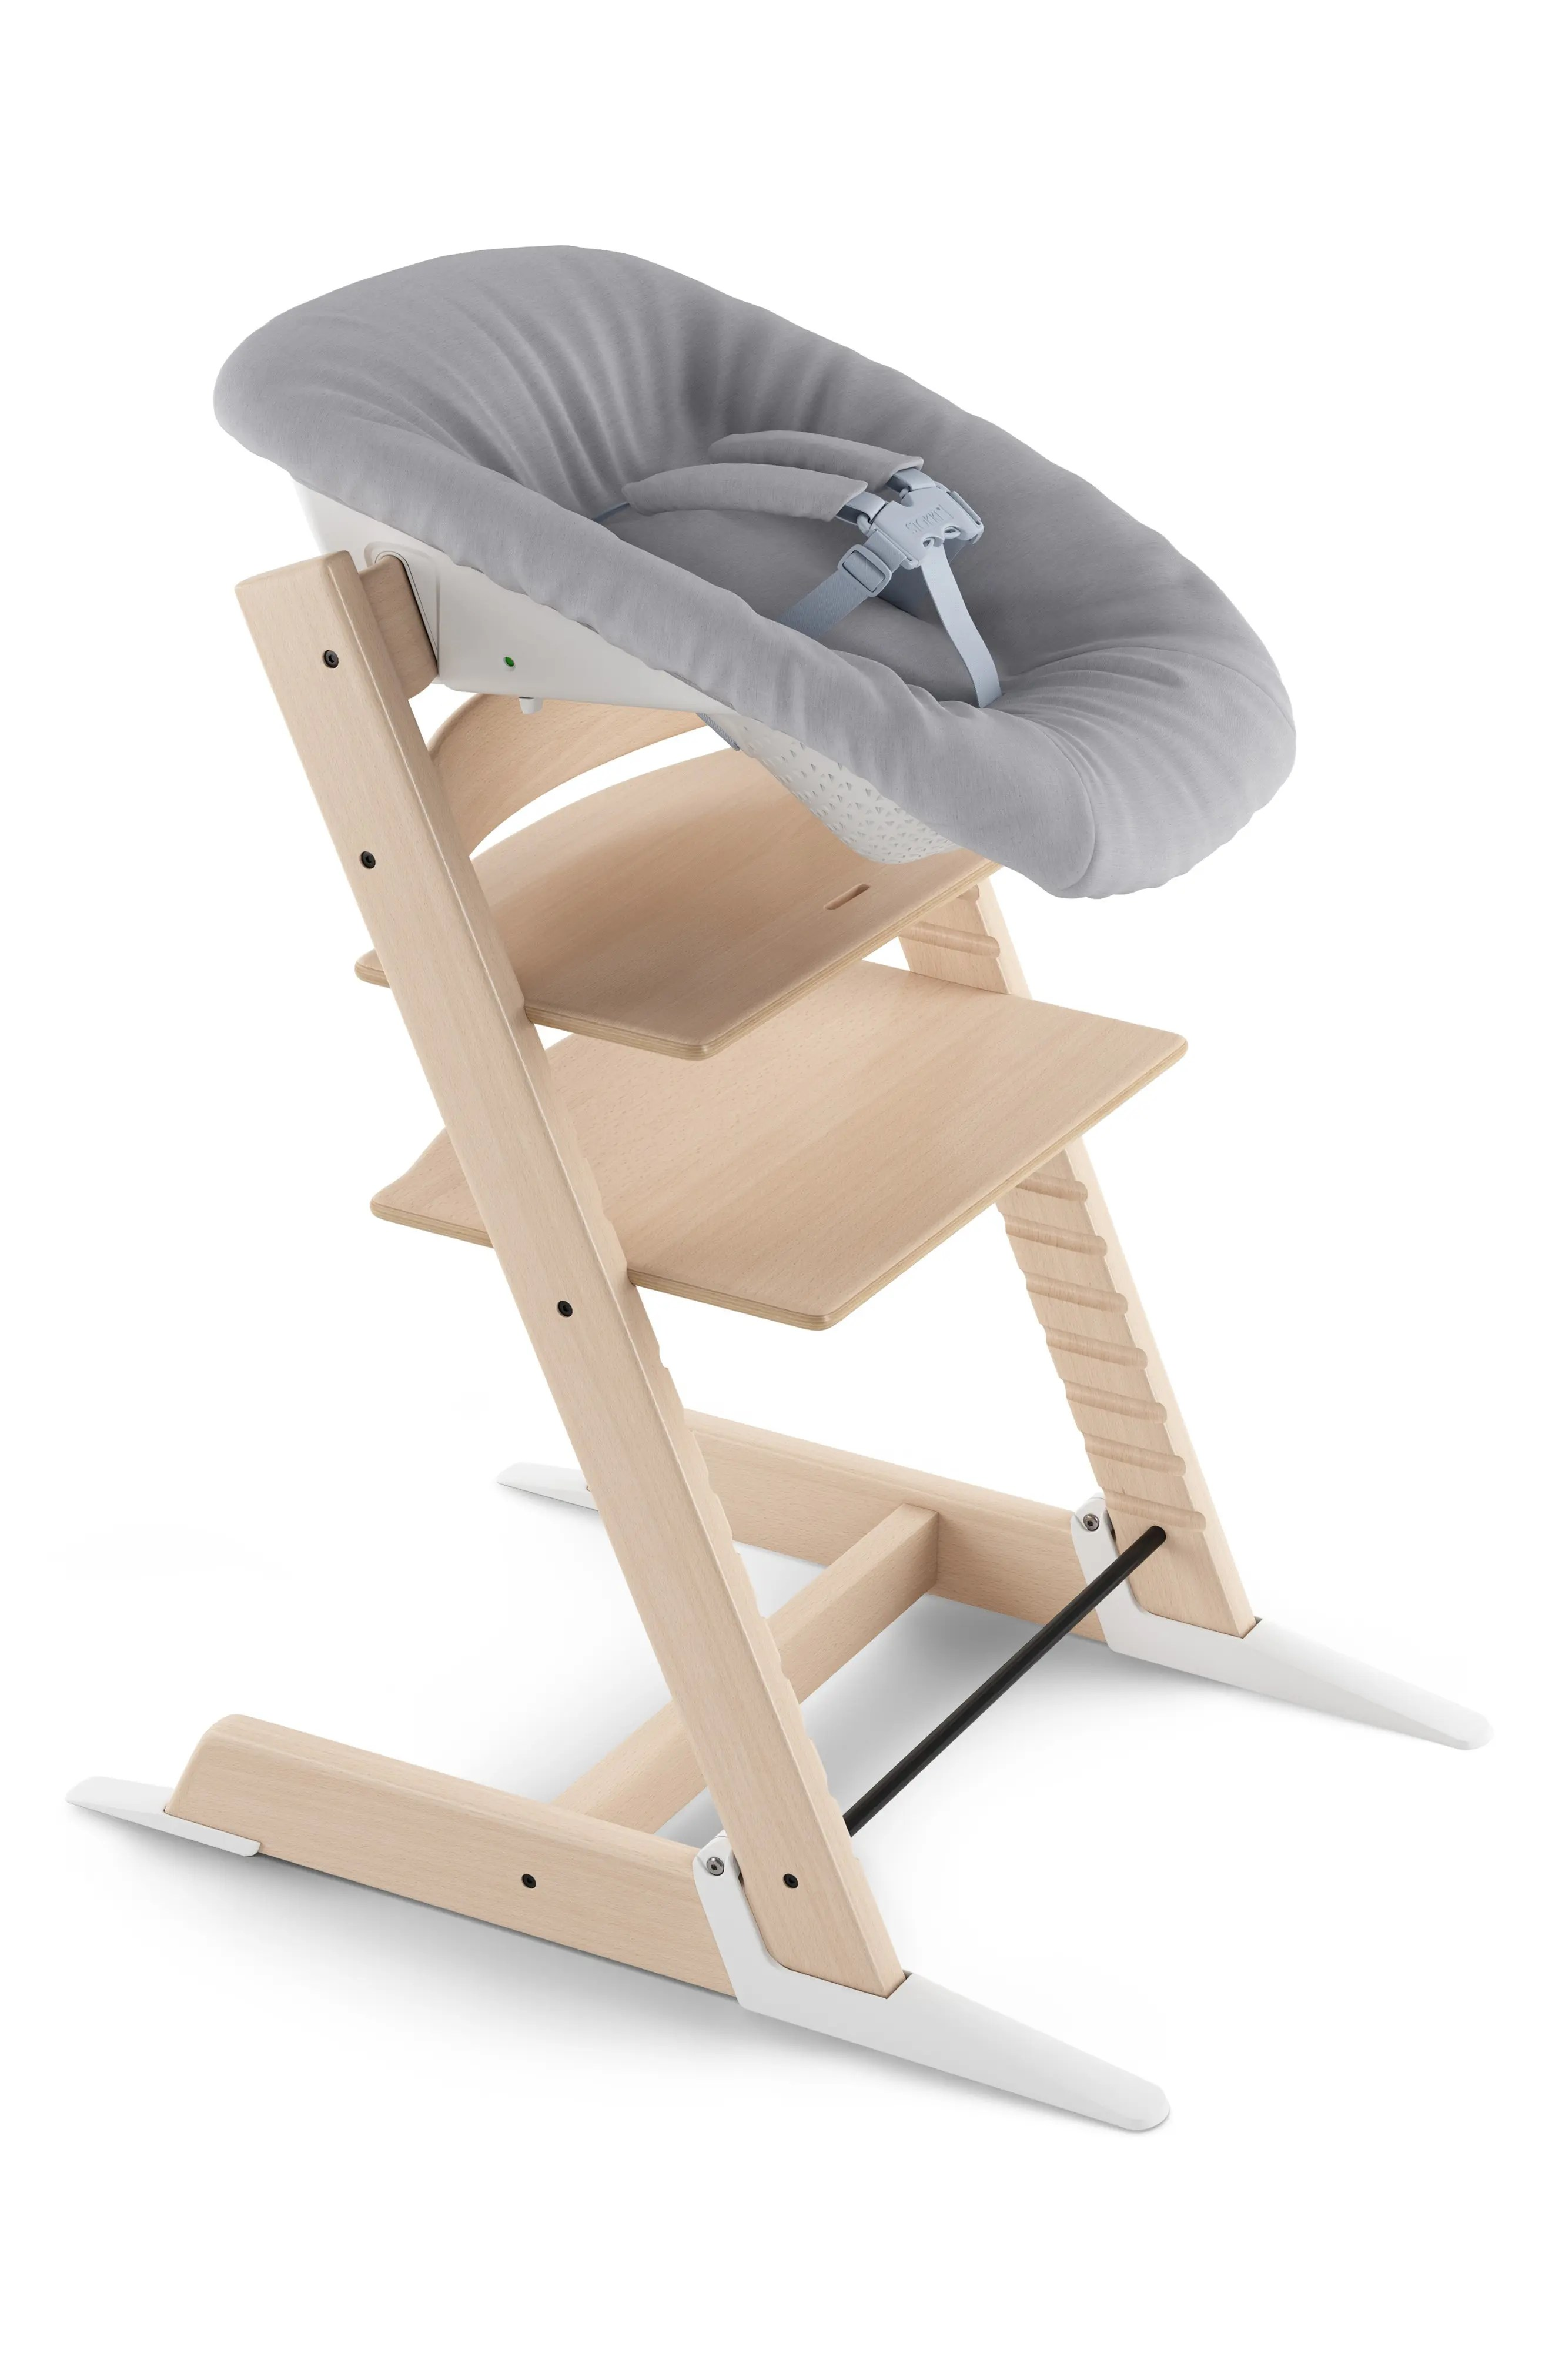 stokke chair harness drive shower high chairs covers booster seats for tables nordstrom tripp trapp newborn set